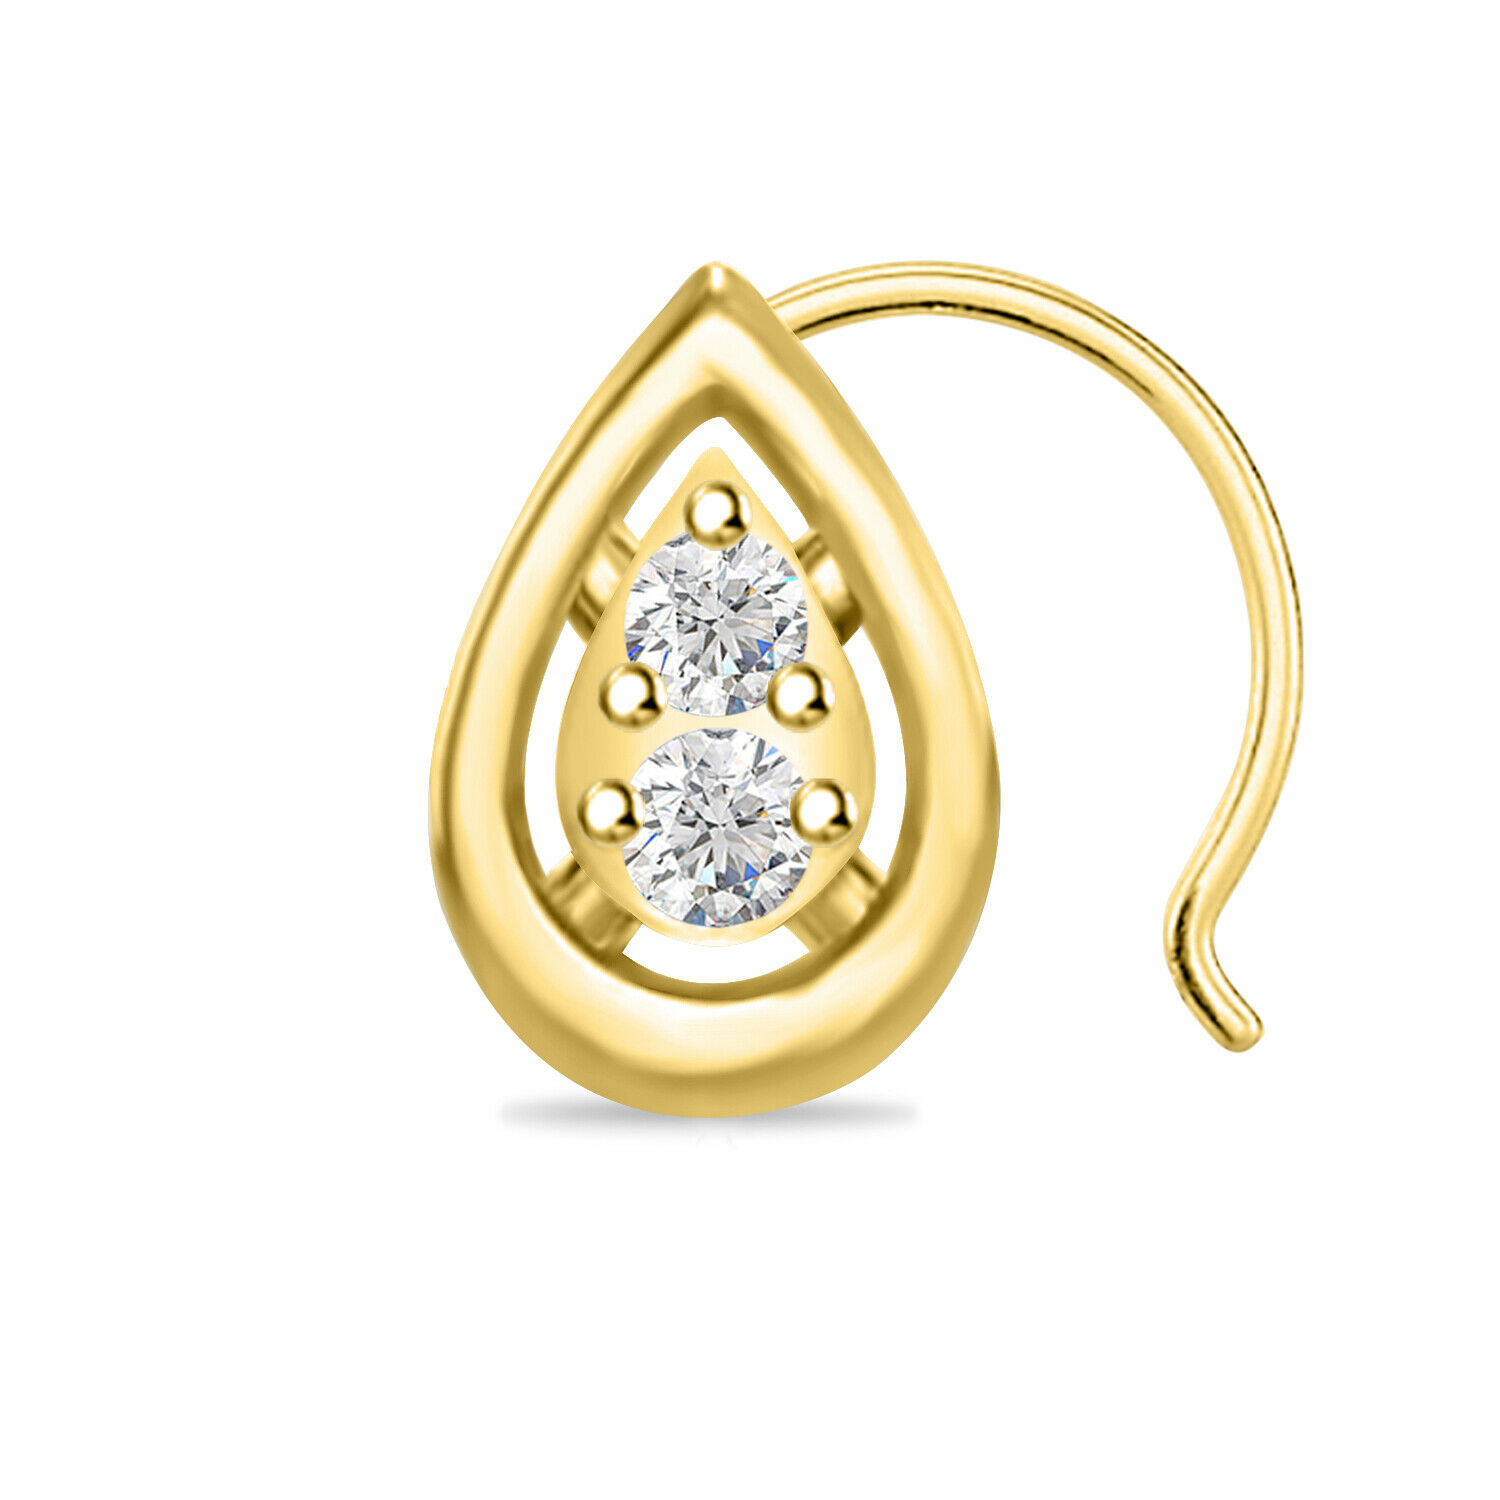 Primary image for 14k Yellow Gold Over Round Cut Diamond Two Stone Drop Shape Nose Pin 0.74 Carat